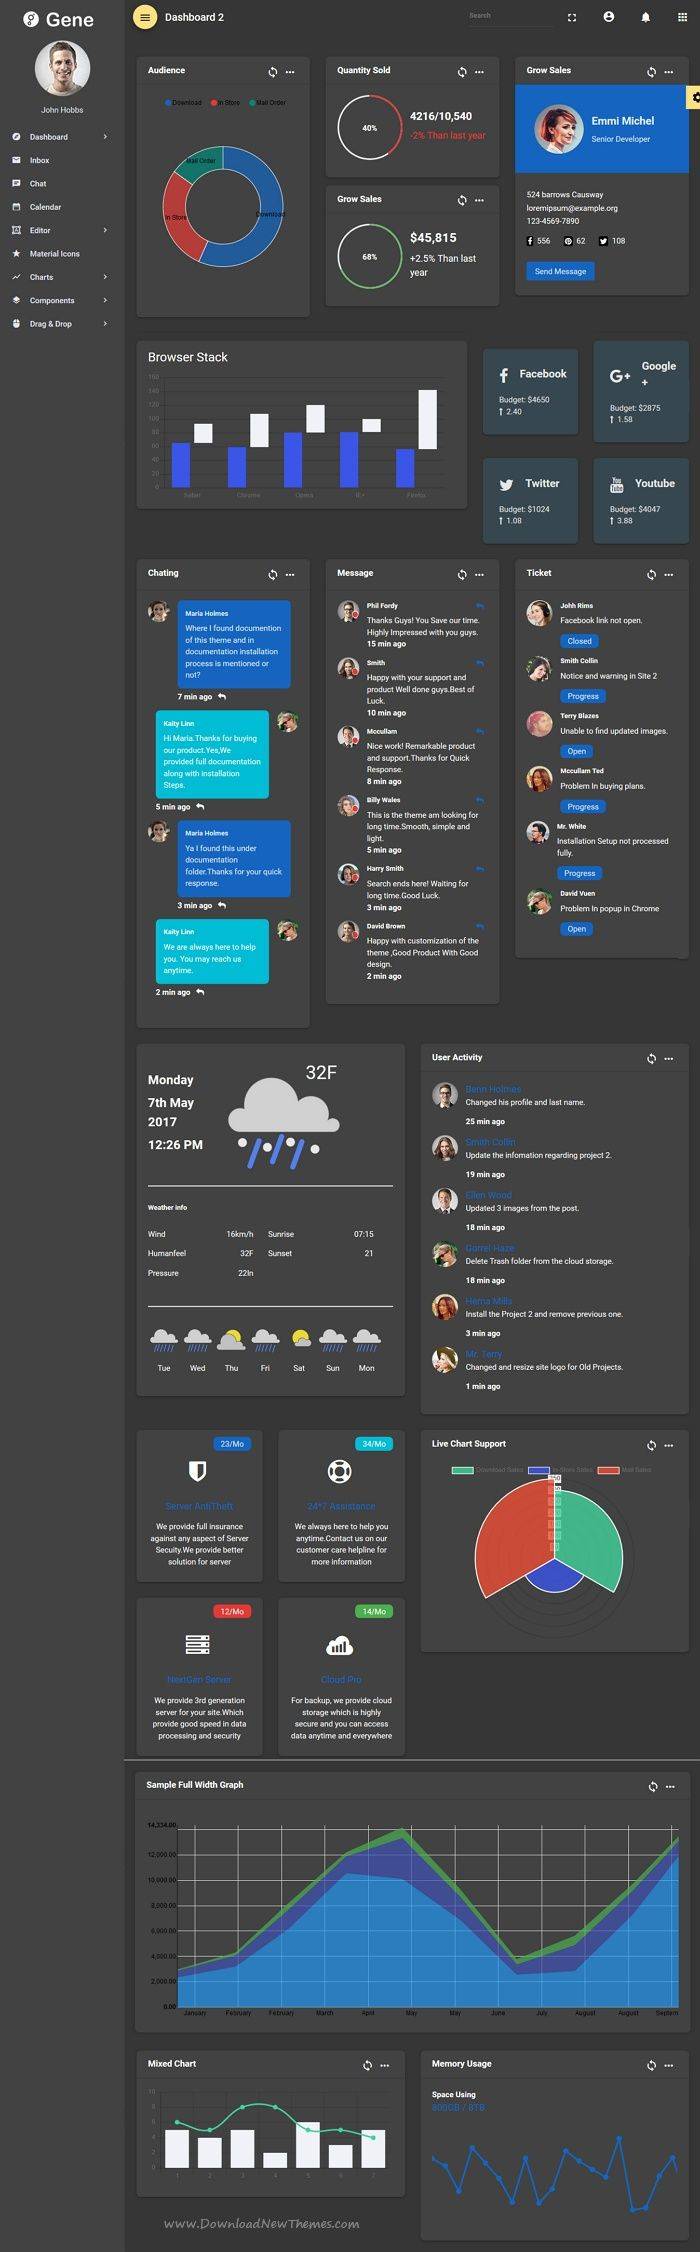 Gene is powerful #AngularJS Material #design template for admin #dashboard, CMS, #CRM and web applications backend projects download now➩ https://themeforest.net/item/gene-angular-2-material-design-admin-template/19877169?ref=Datasata